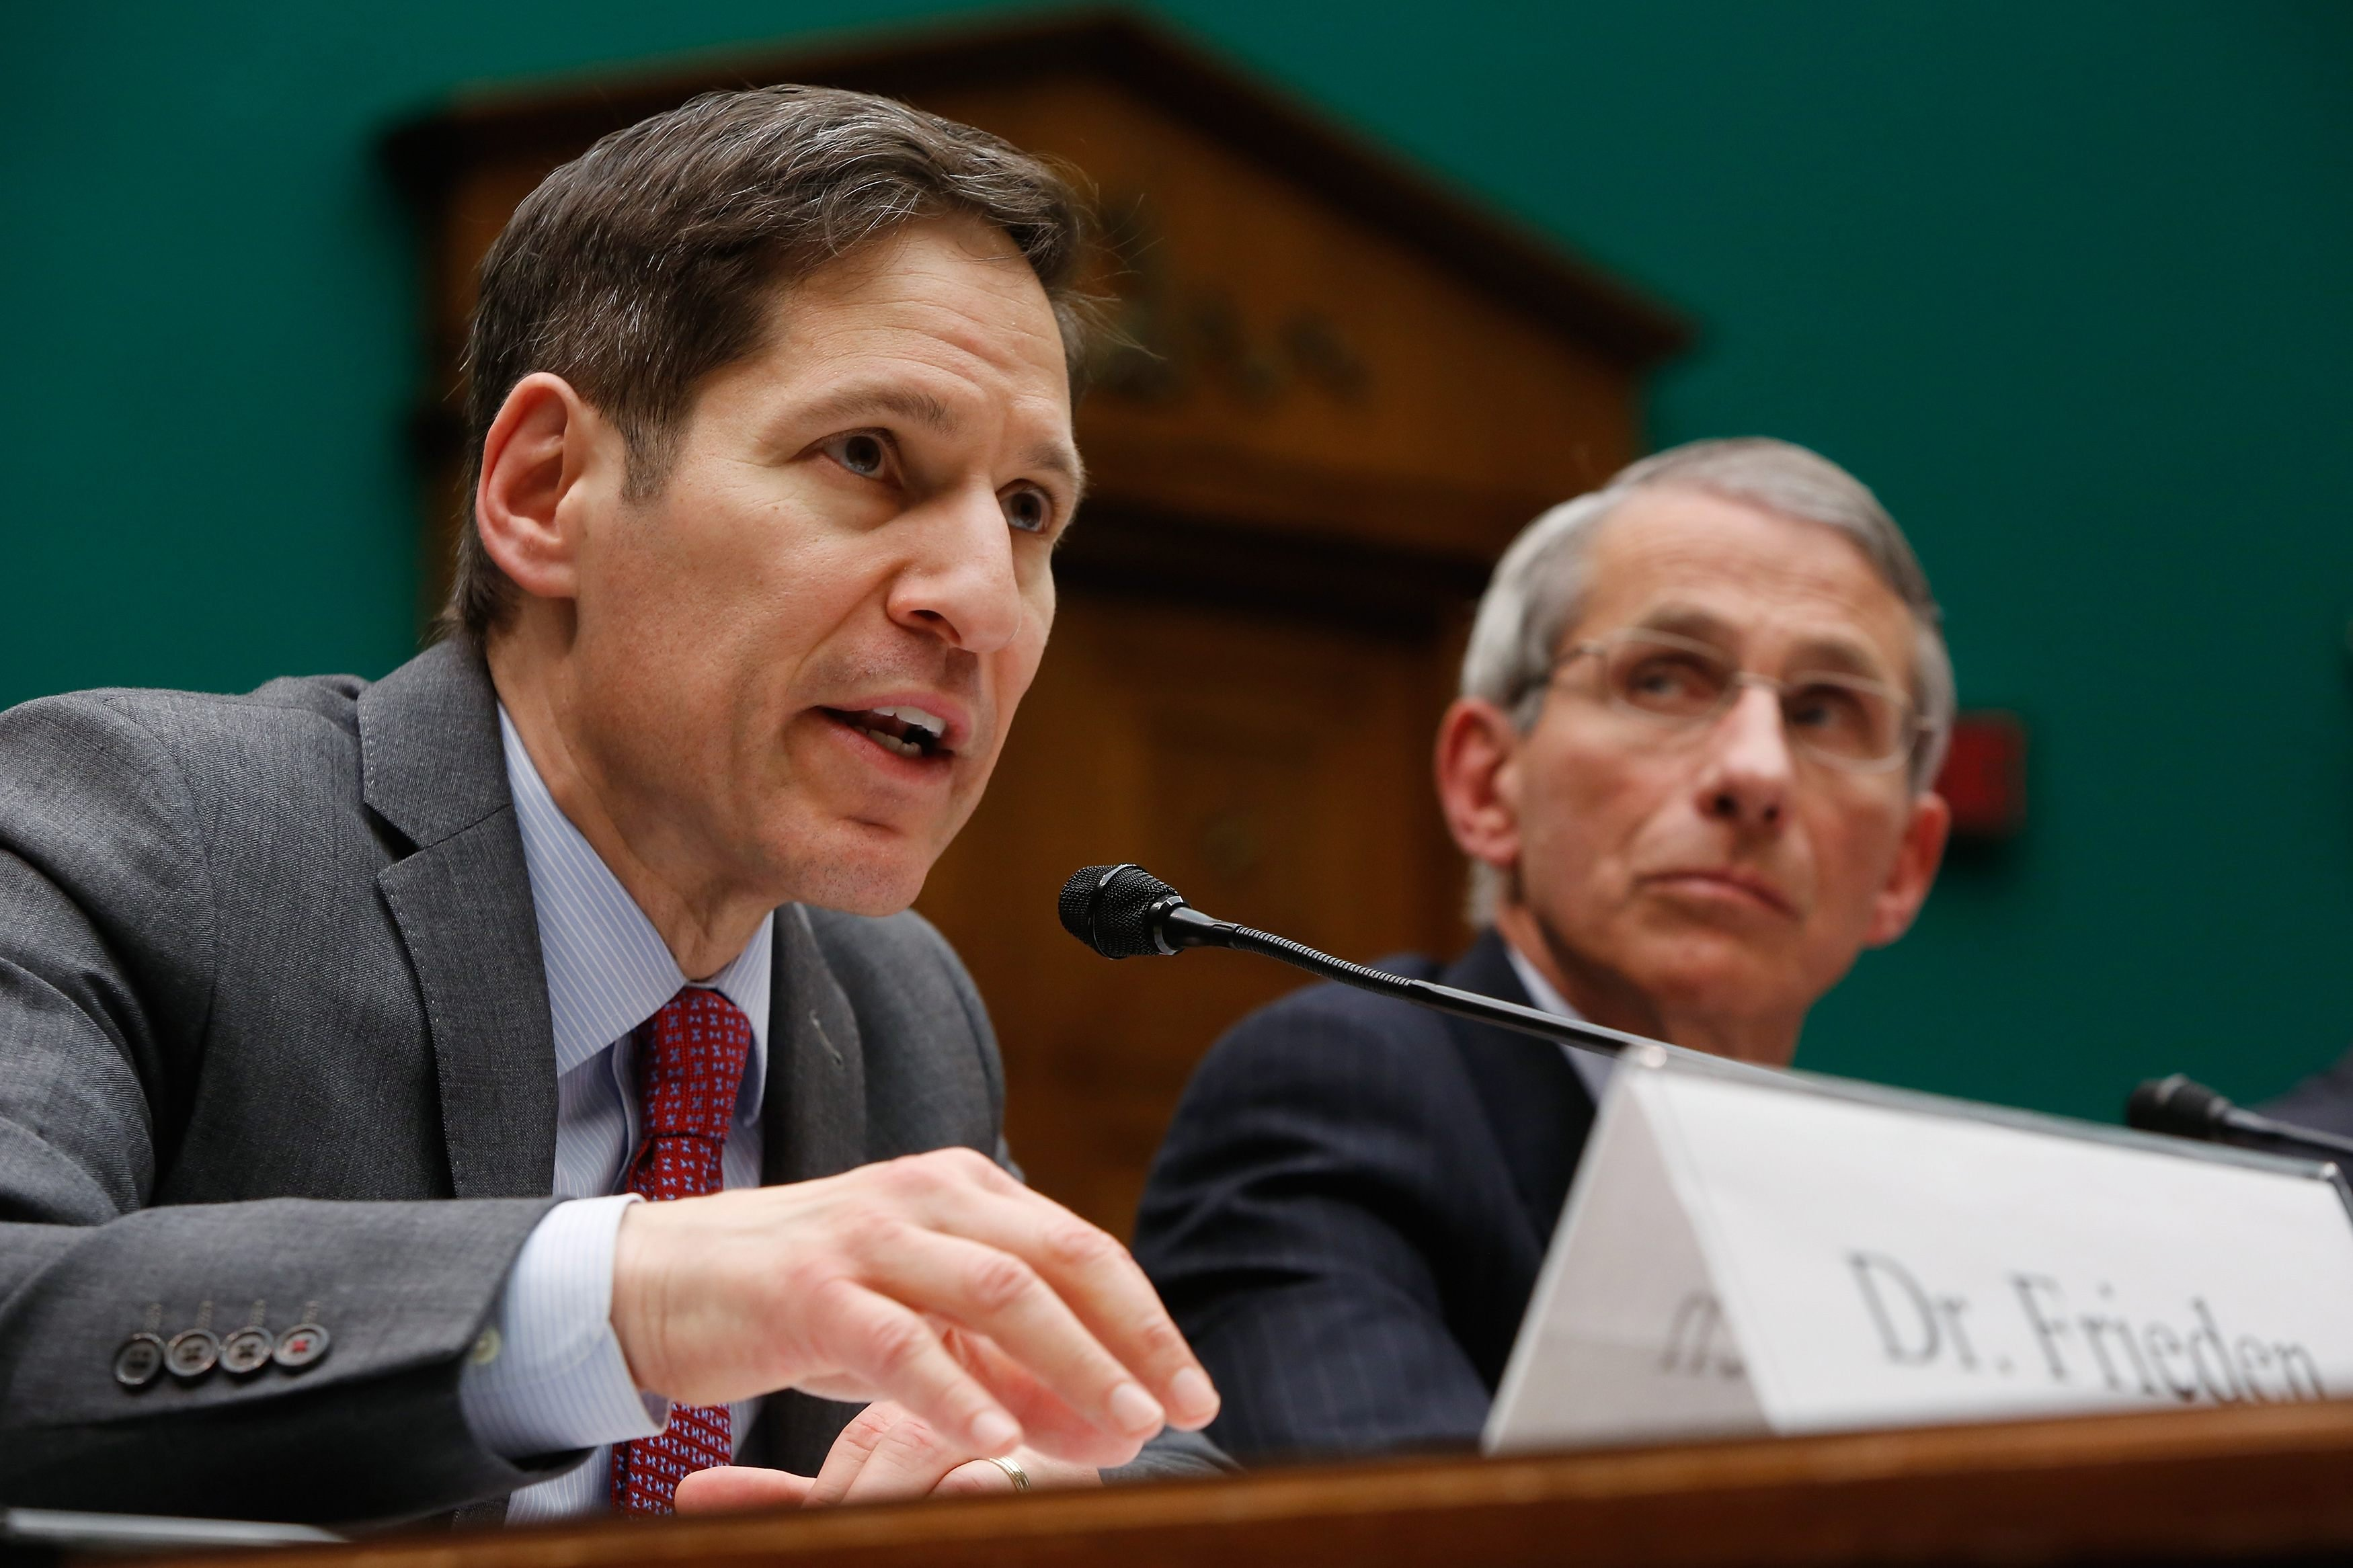 From Left: Center for Disease Control and Prevention Director Tom Frieden and National Institute of Allergy and Infectious Disease Director Anthony Fauci testify before a House Energy and Commerce Oversight and Investigations Subcommittee hearing on the U.S. response to the Ebola crisis, in Washington D.C. on Oct. 16, 2014.